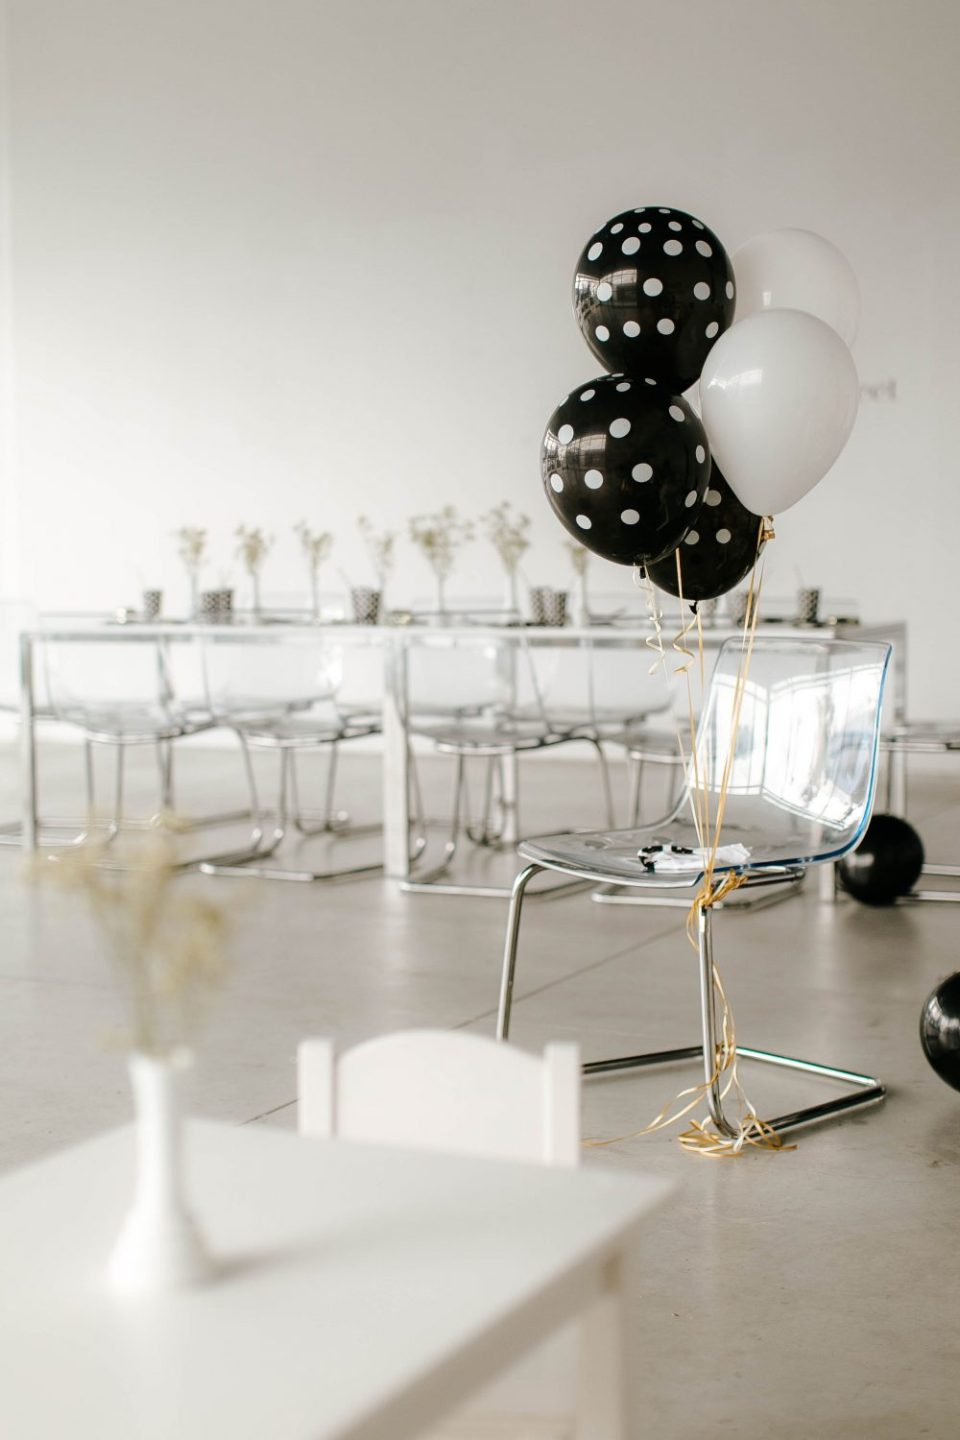 Black White and Polka dots gender neutral birthday party set up